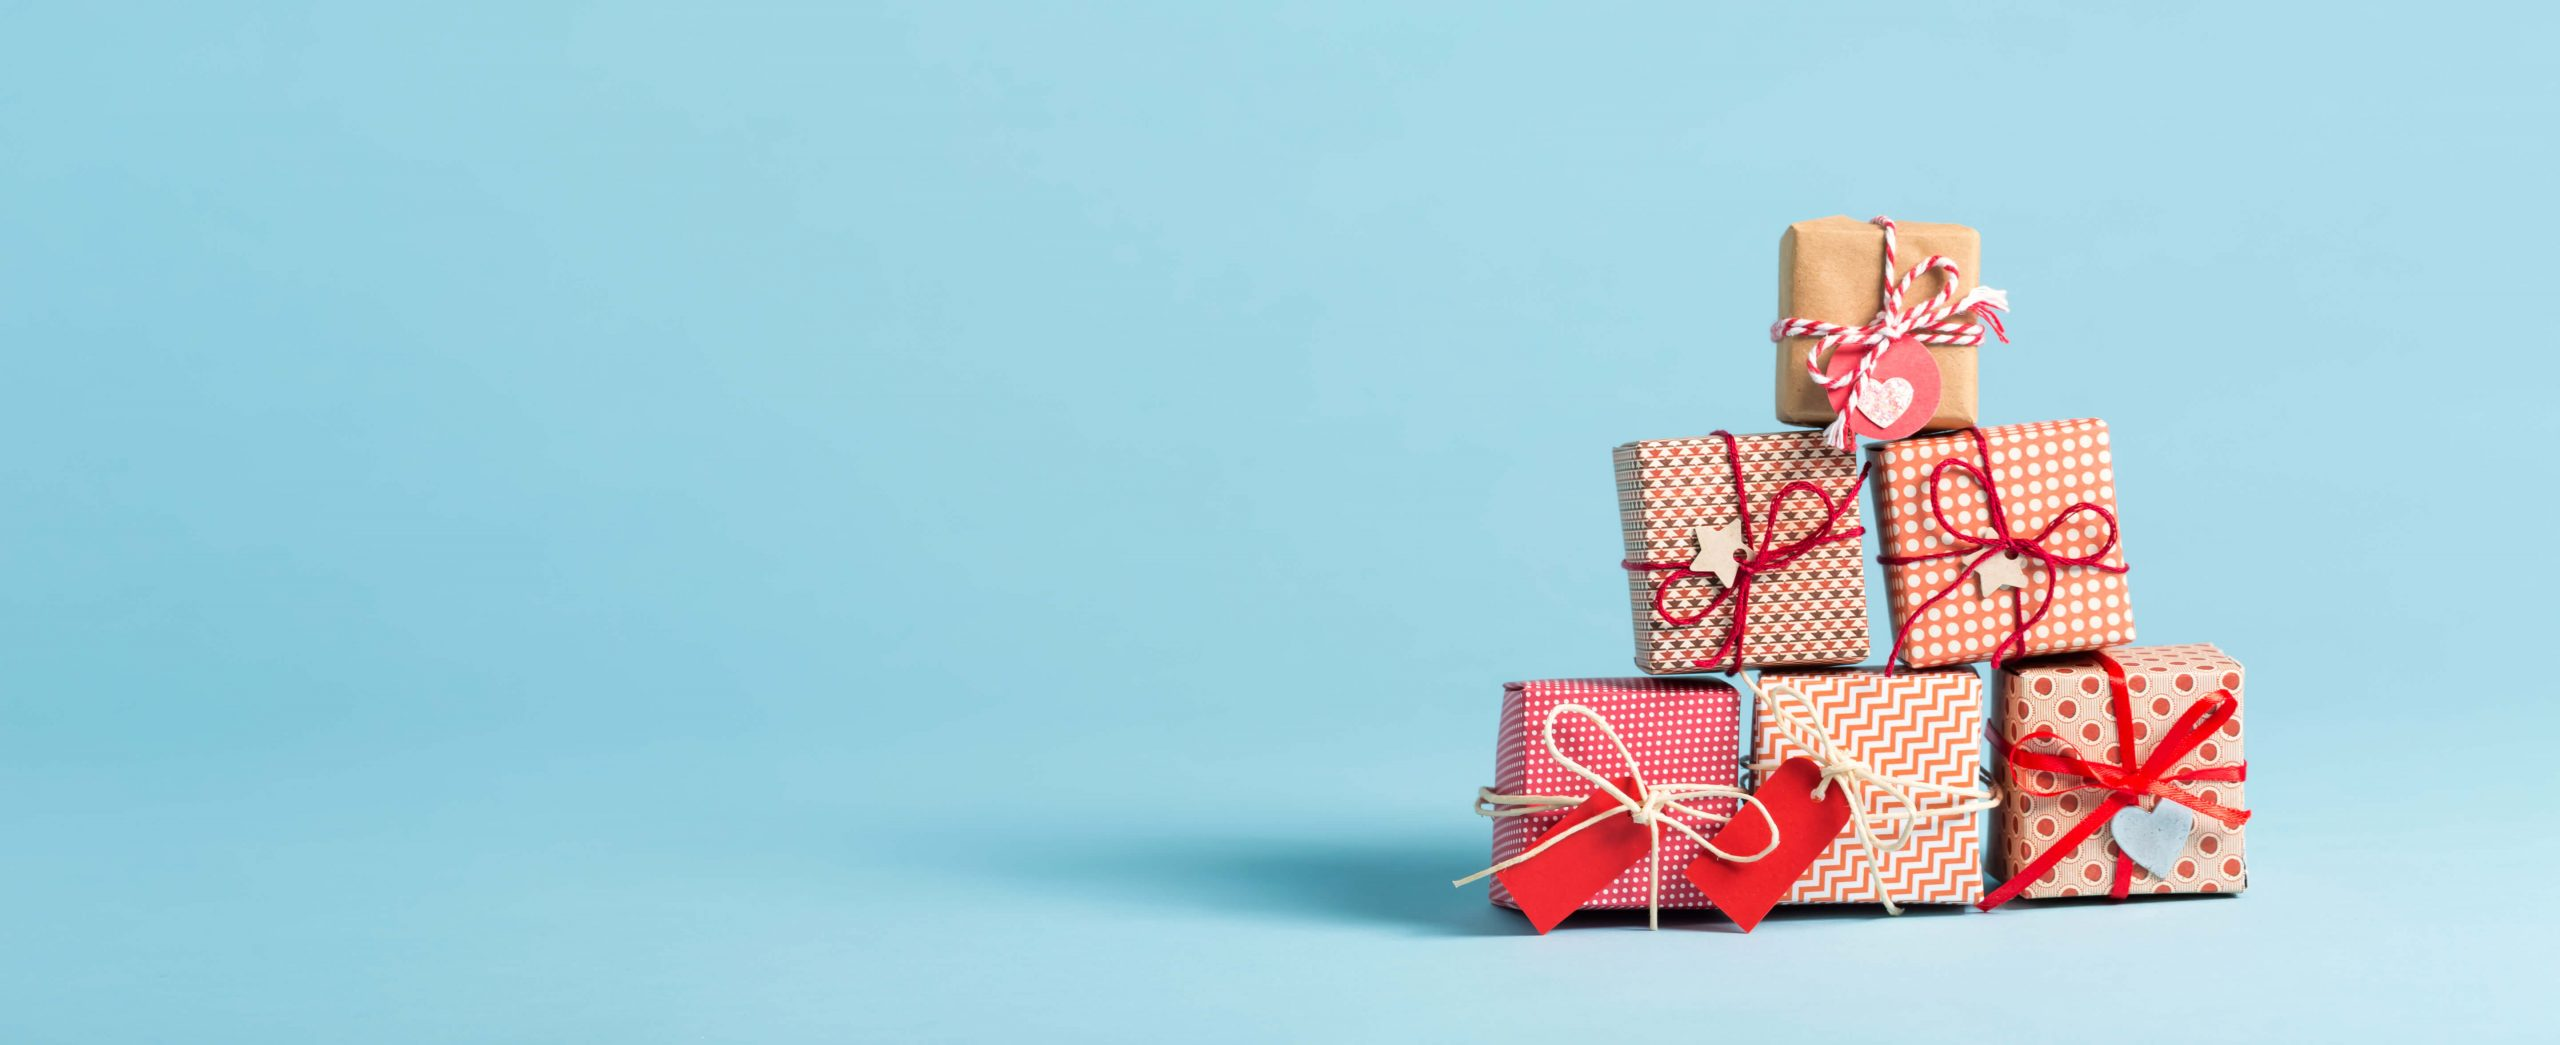 holiday gift stacked on blue background